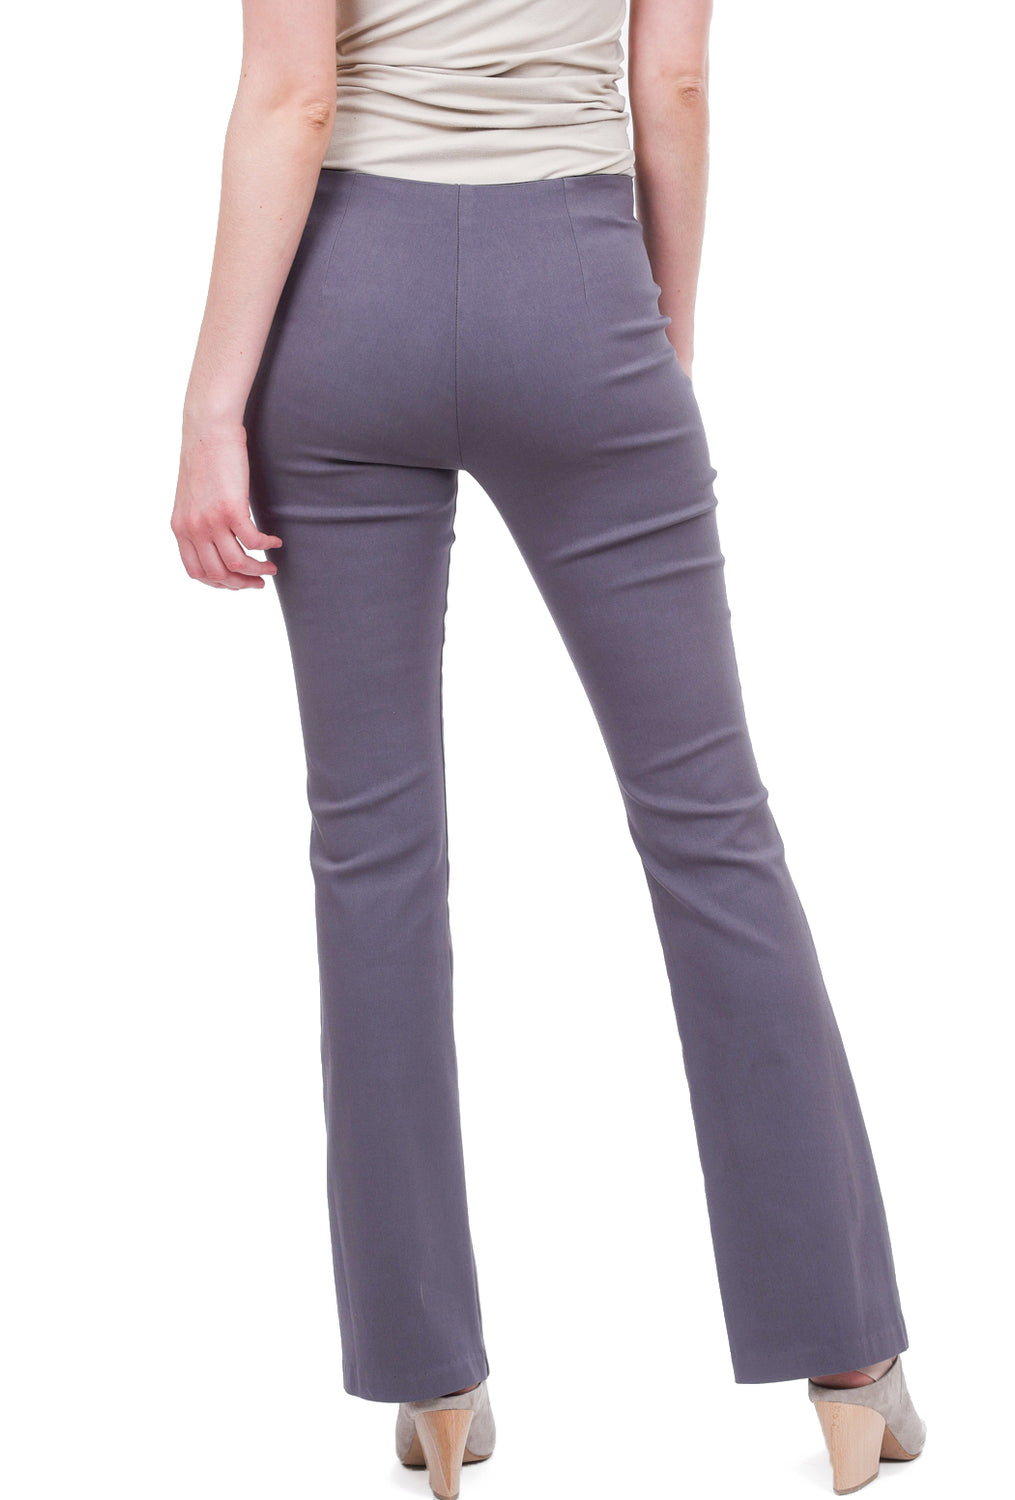 Equestrian Miley Pants, Marble Gray